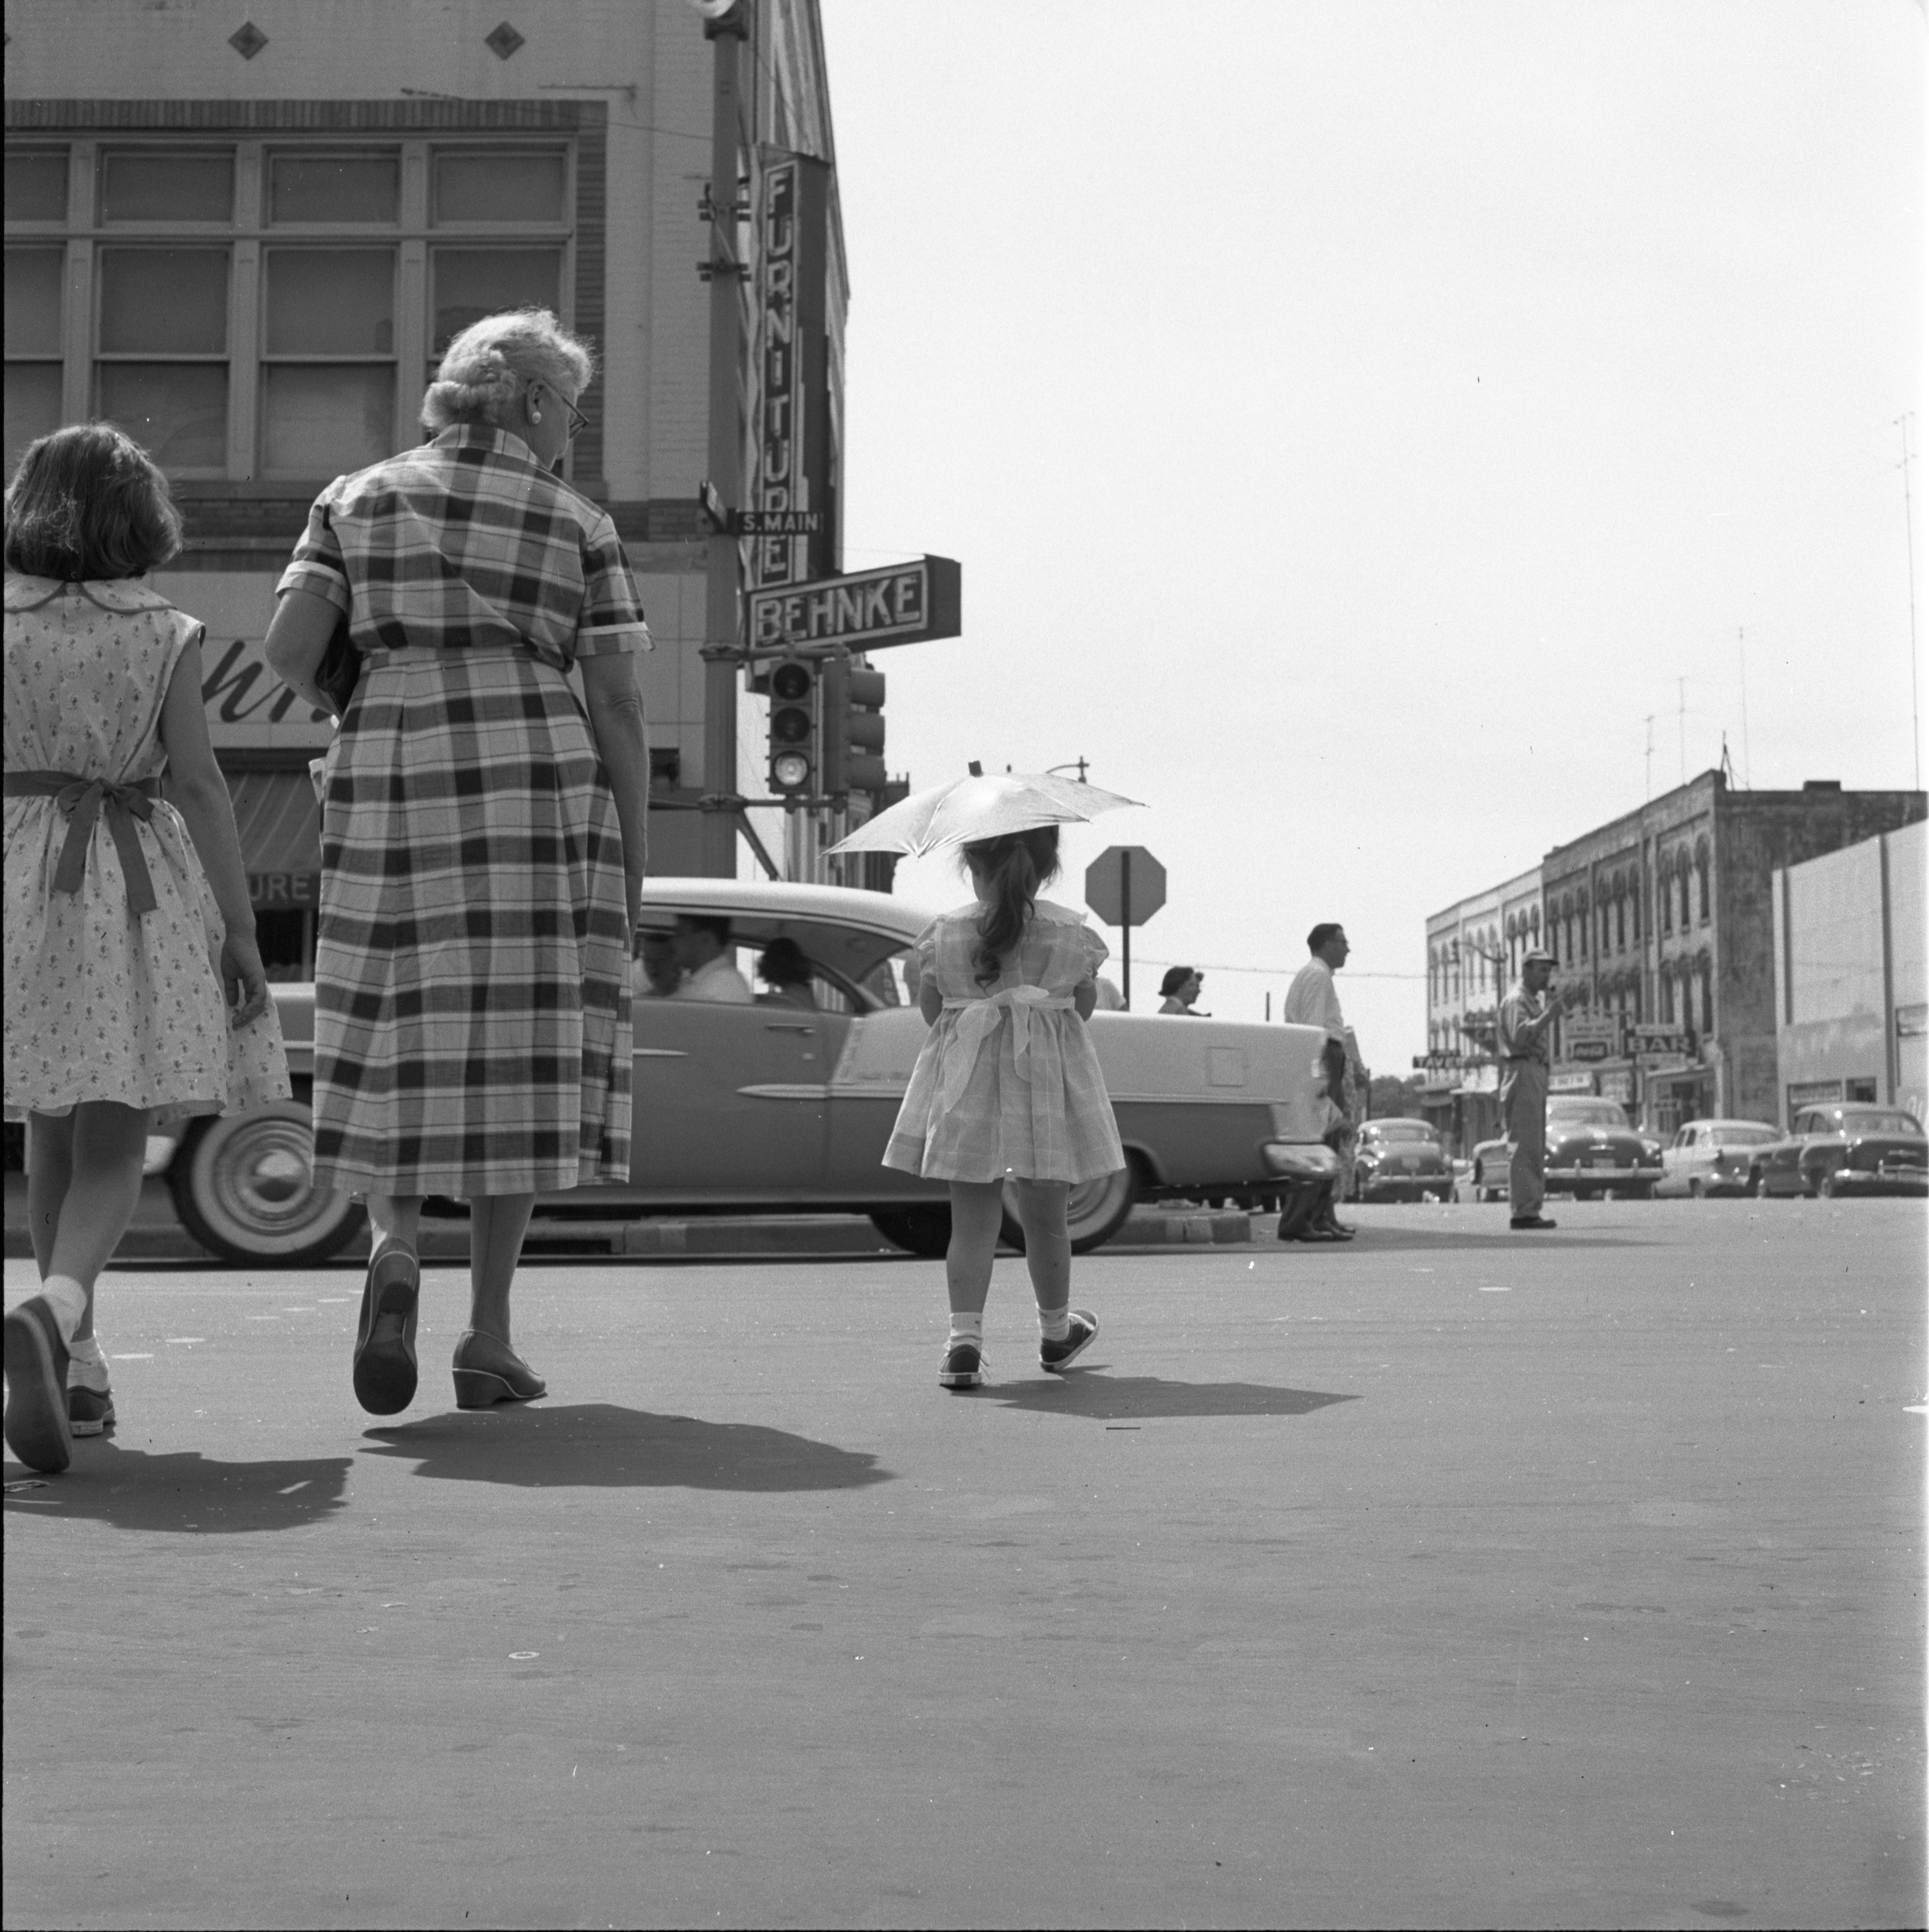 Pedestrians At The Main St - Liberty St Intersection On A Hot Summer Day, June 1956 image